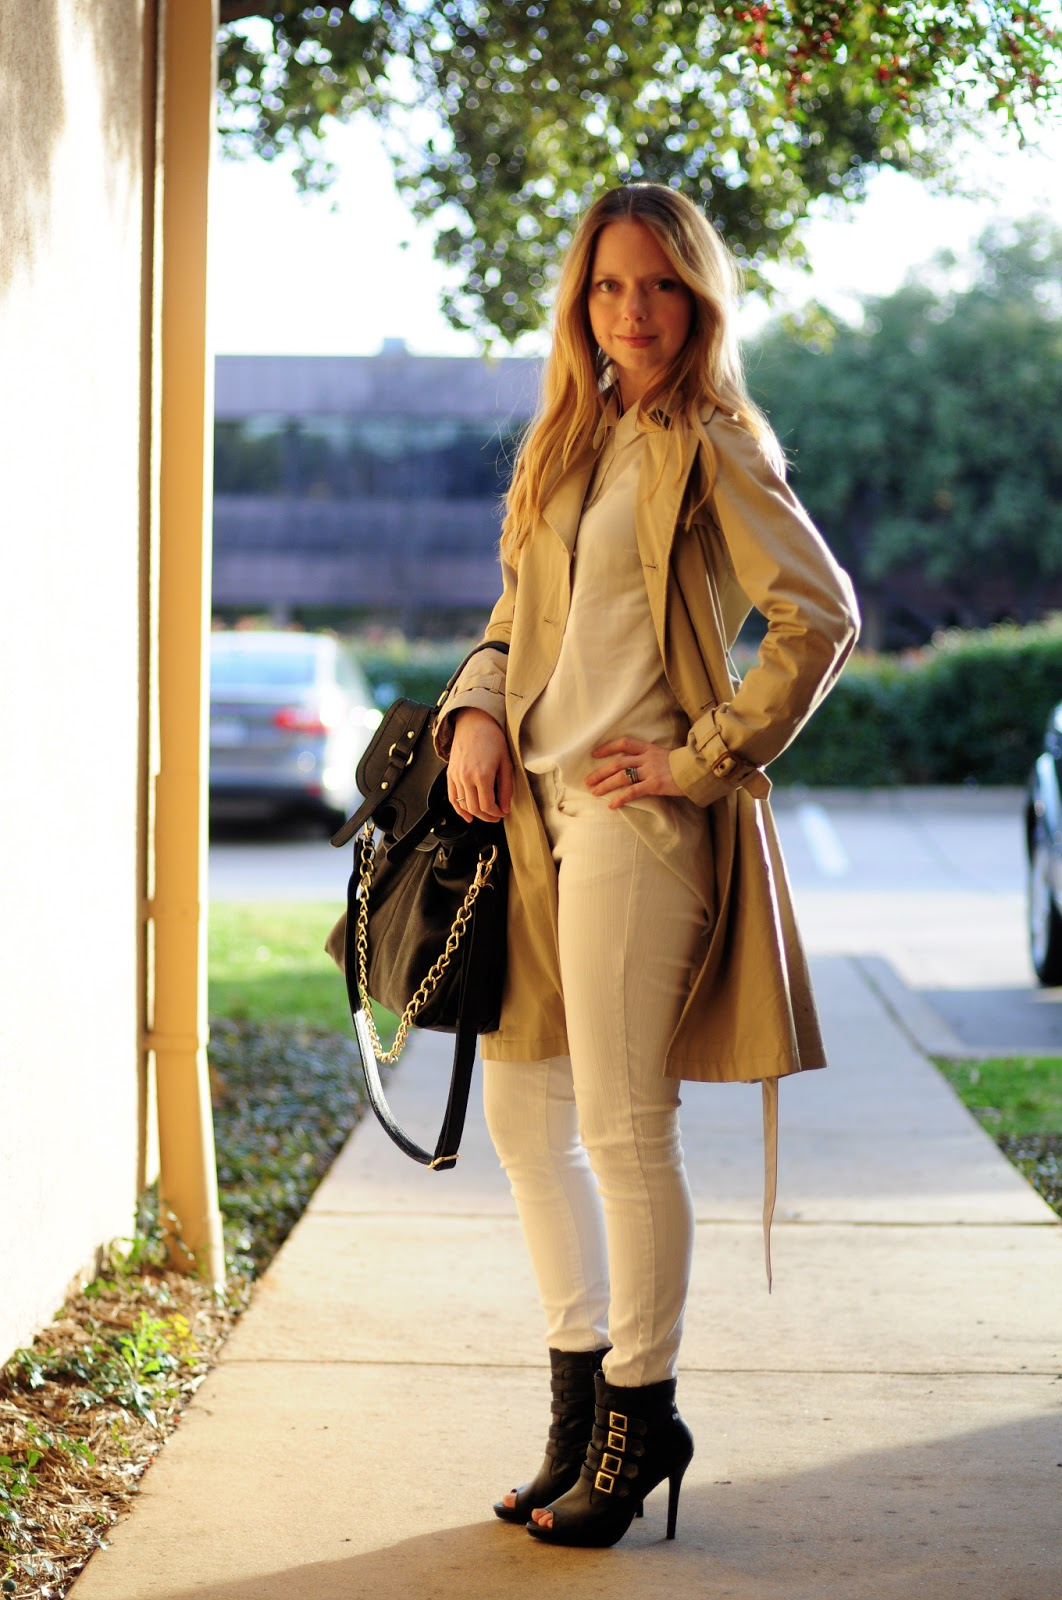 White with Trench and Black Accessories